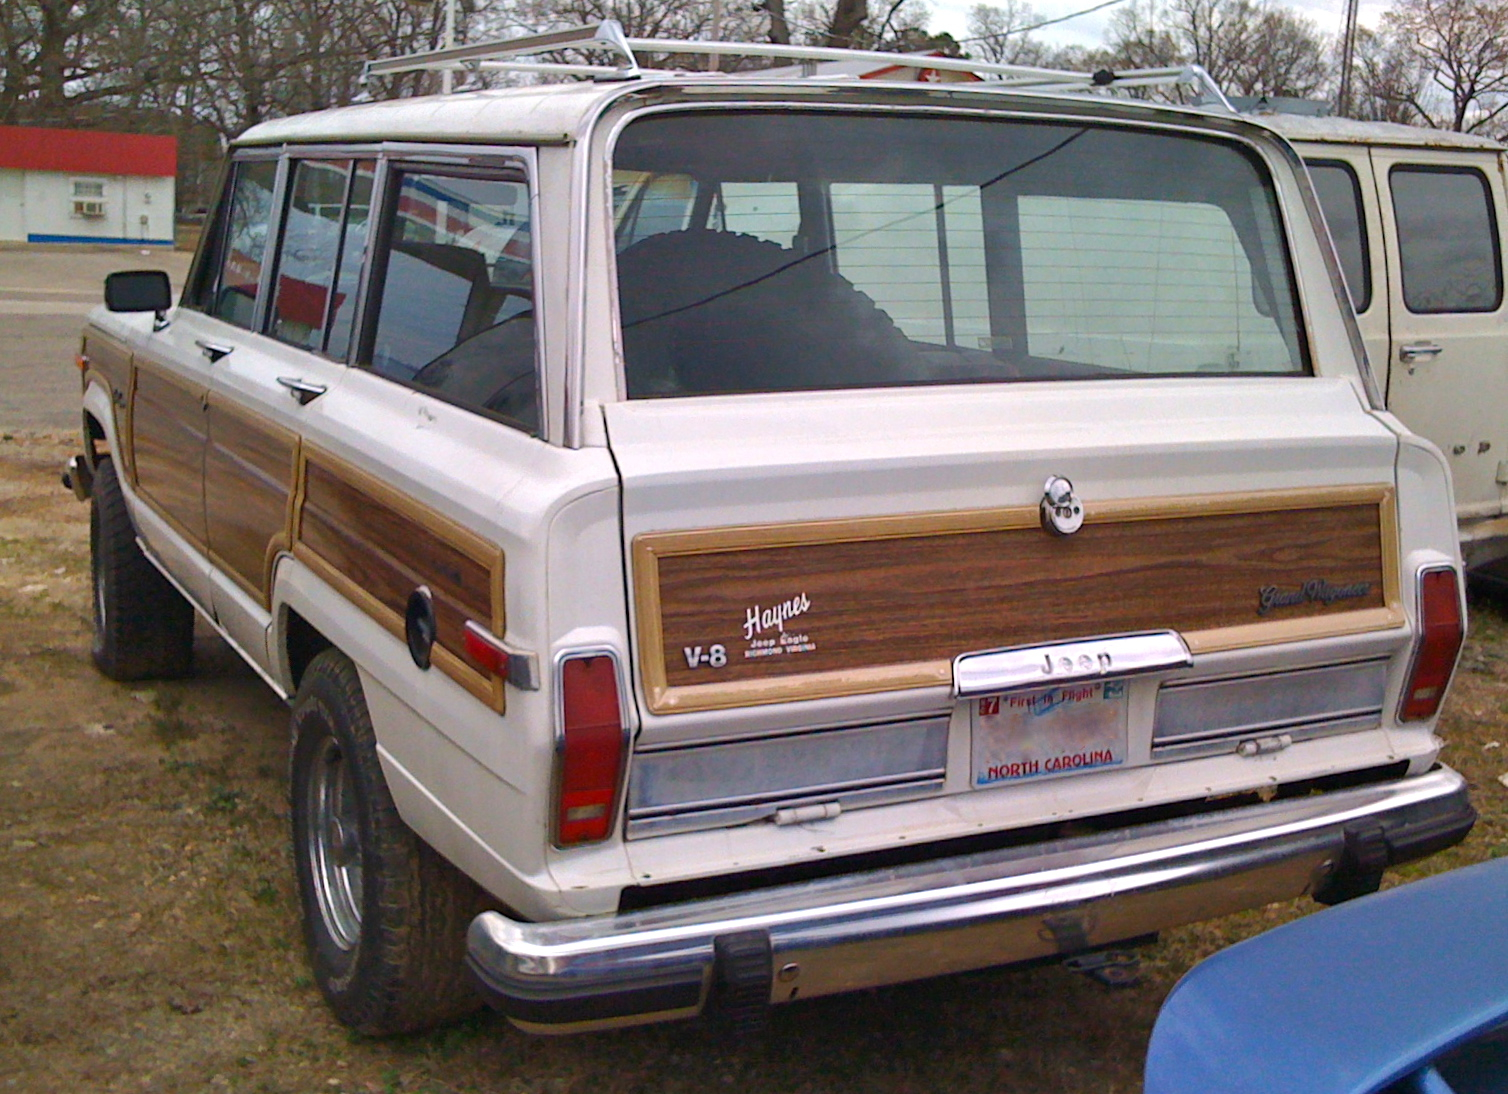 Jeep Grand Wagoneer >> File:Jeep Grand Wagoneer white Raeford-r.jpg - Wikimedia Commons